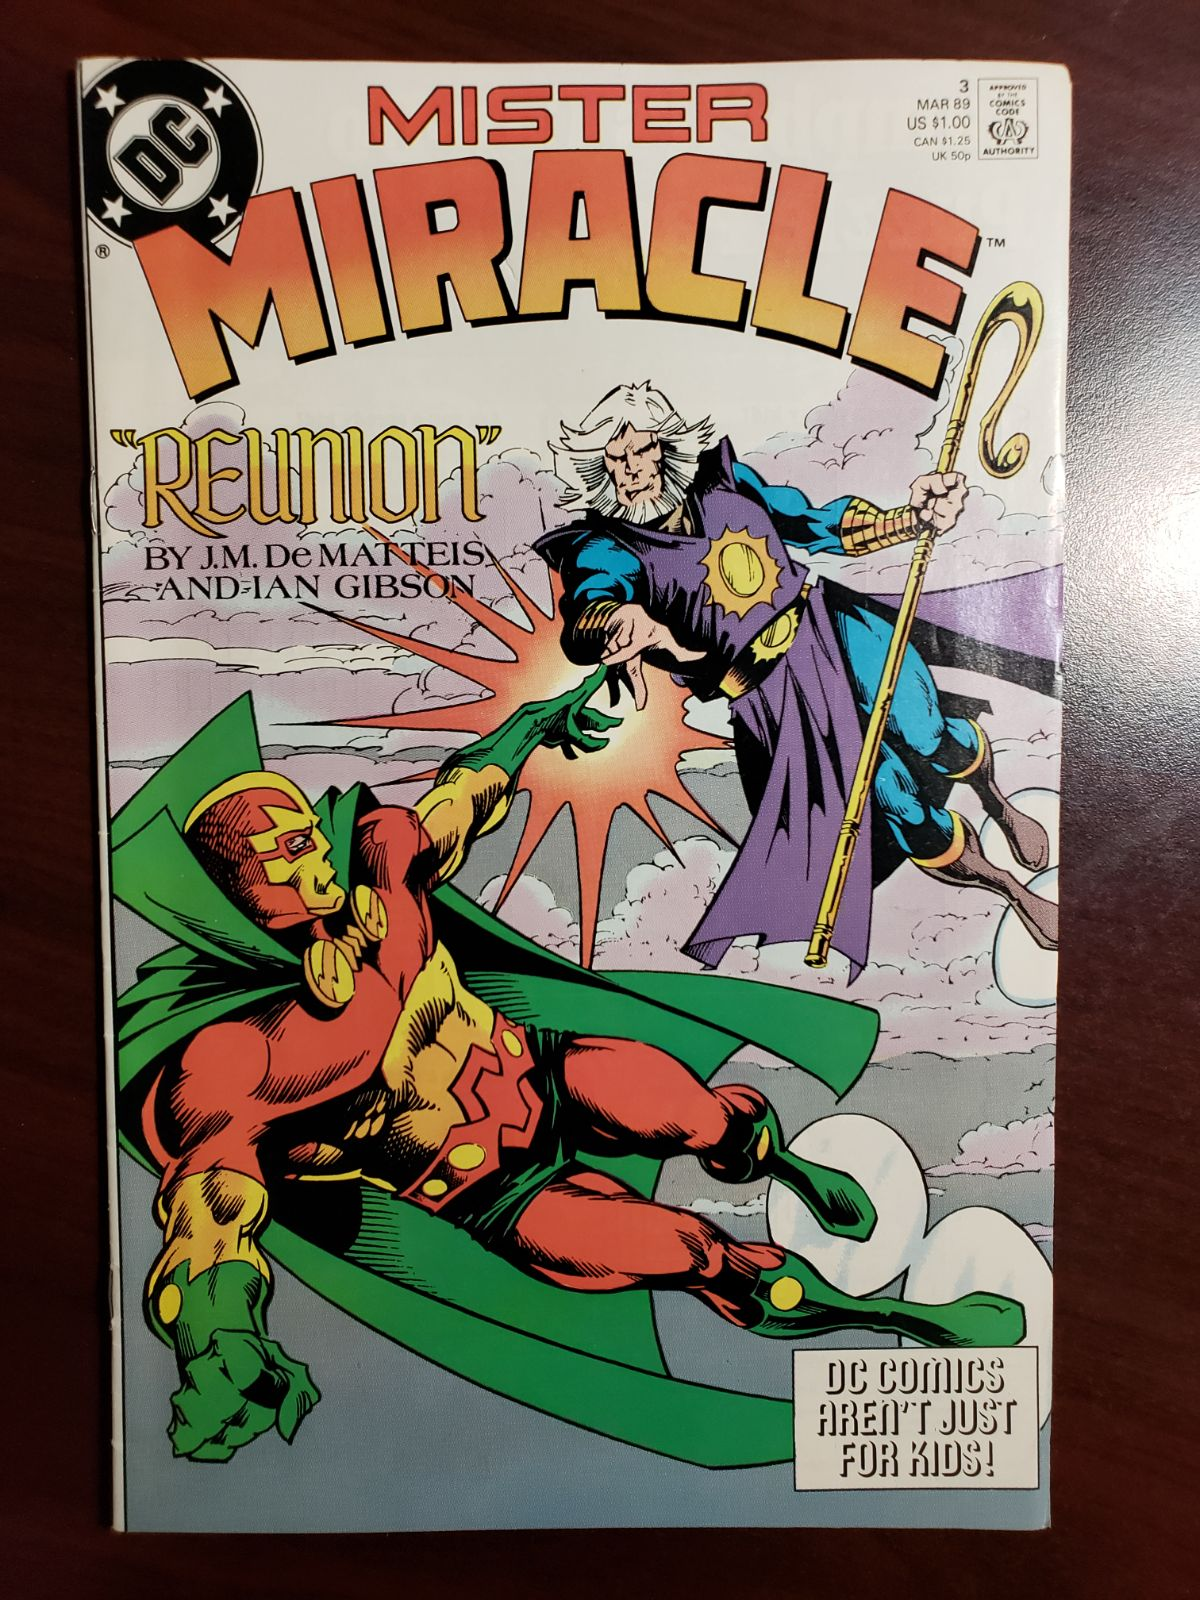 MR. MIRACLE - #3 - KIRBY'S CHARACTERS AR